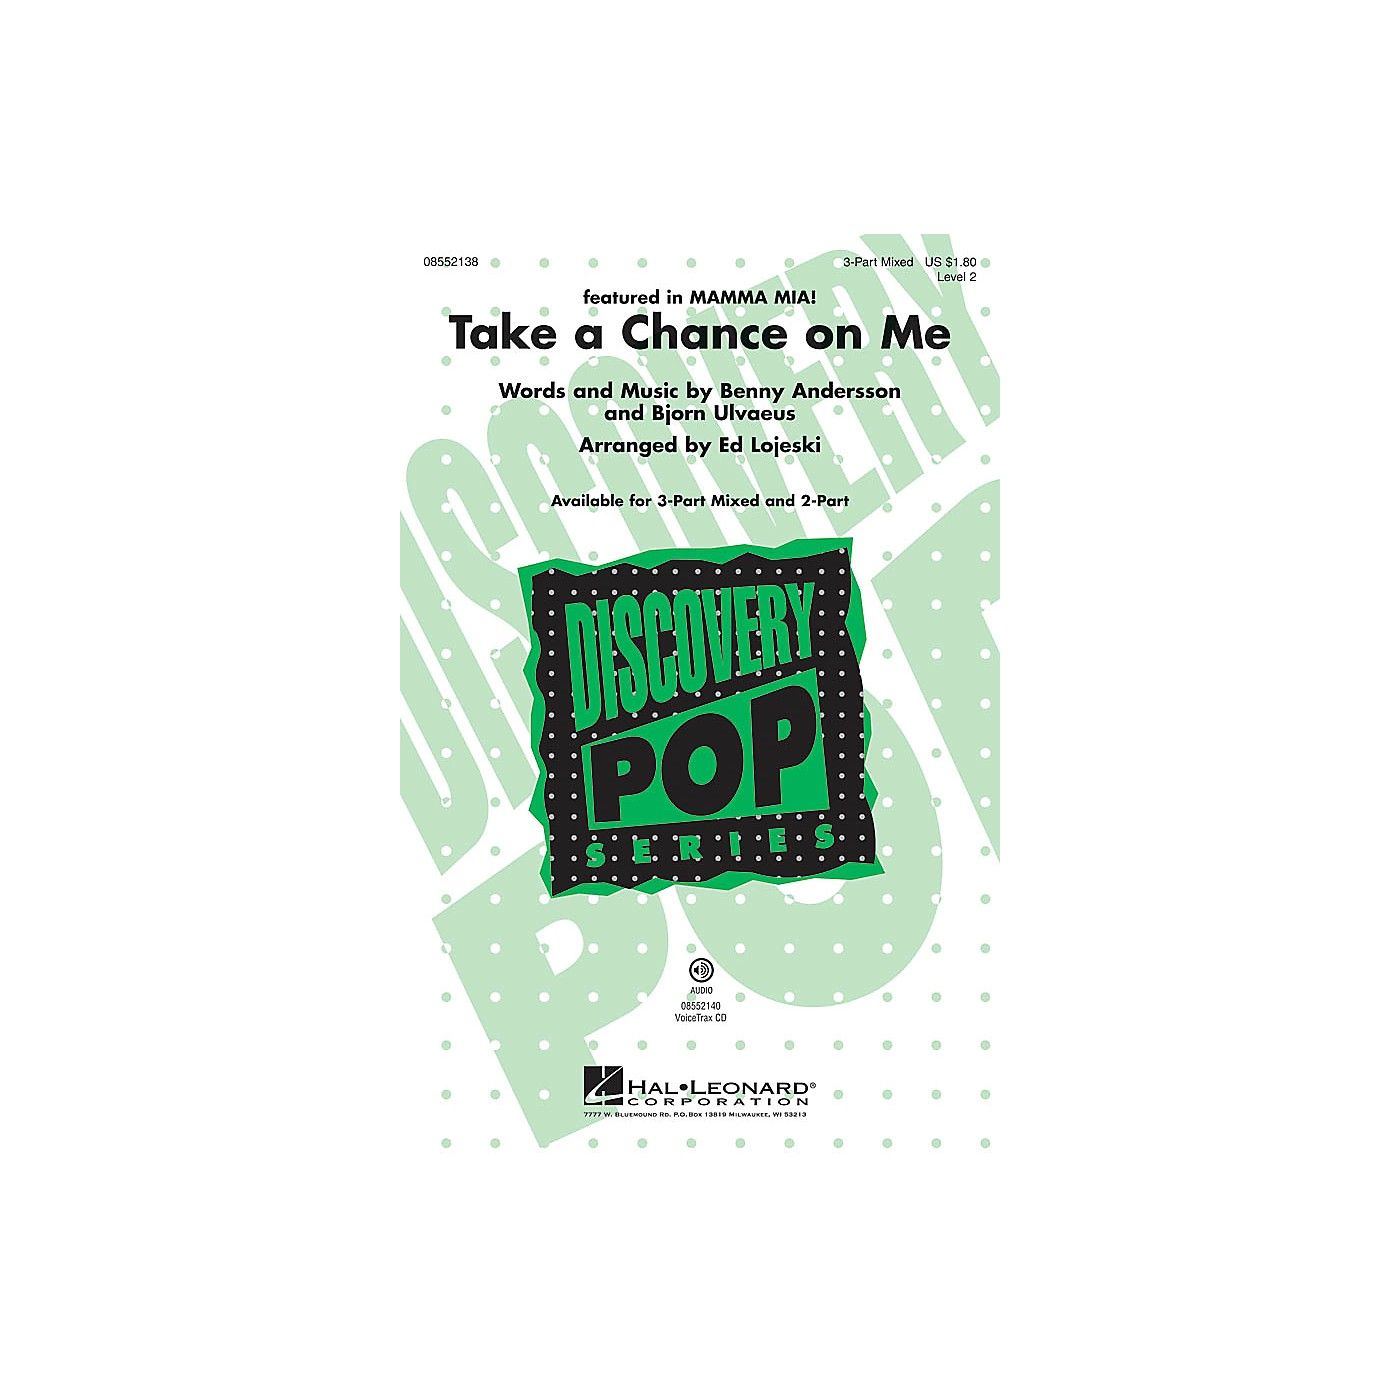 Hal Leonard Take a Chance on Me (from Mamma Mia!) Discovery Level 2 VoiceTrax CD by ABBA Arranged by Ed Lojeski thumbnail